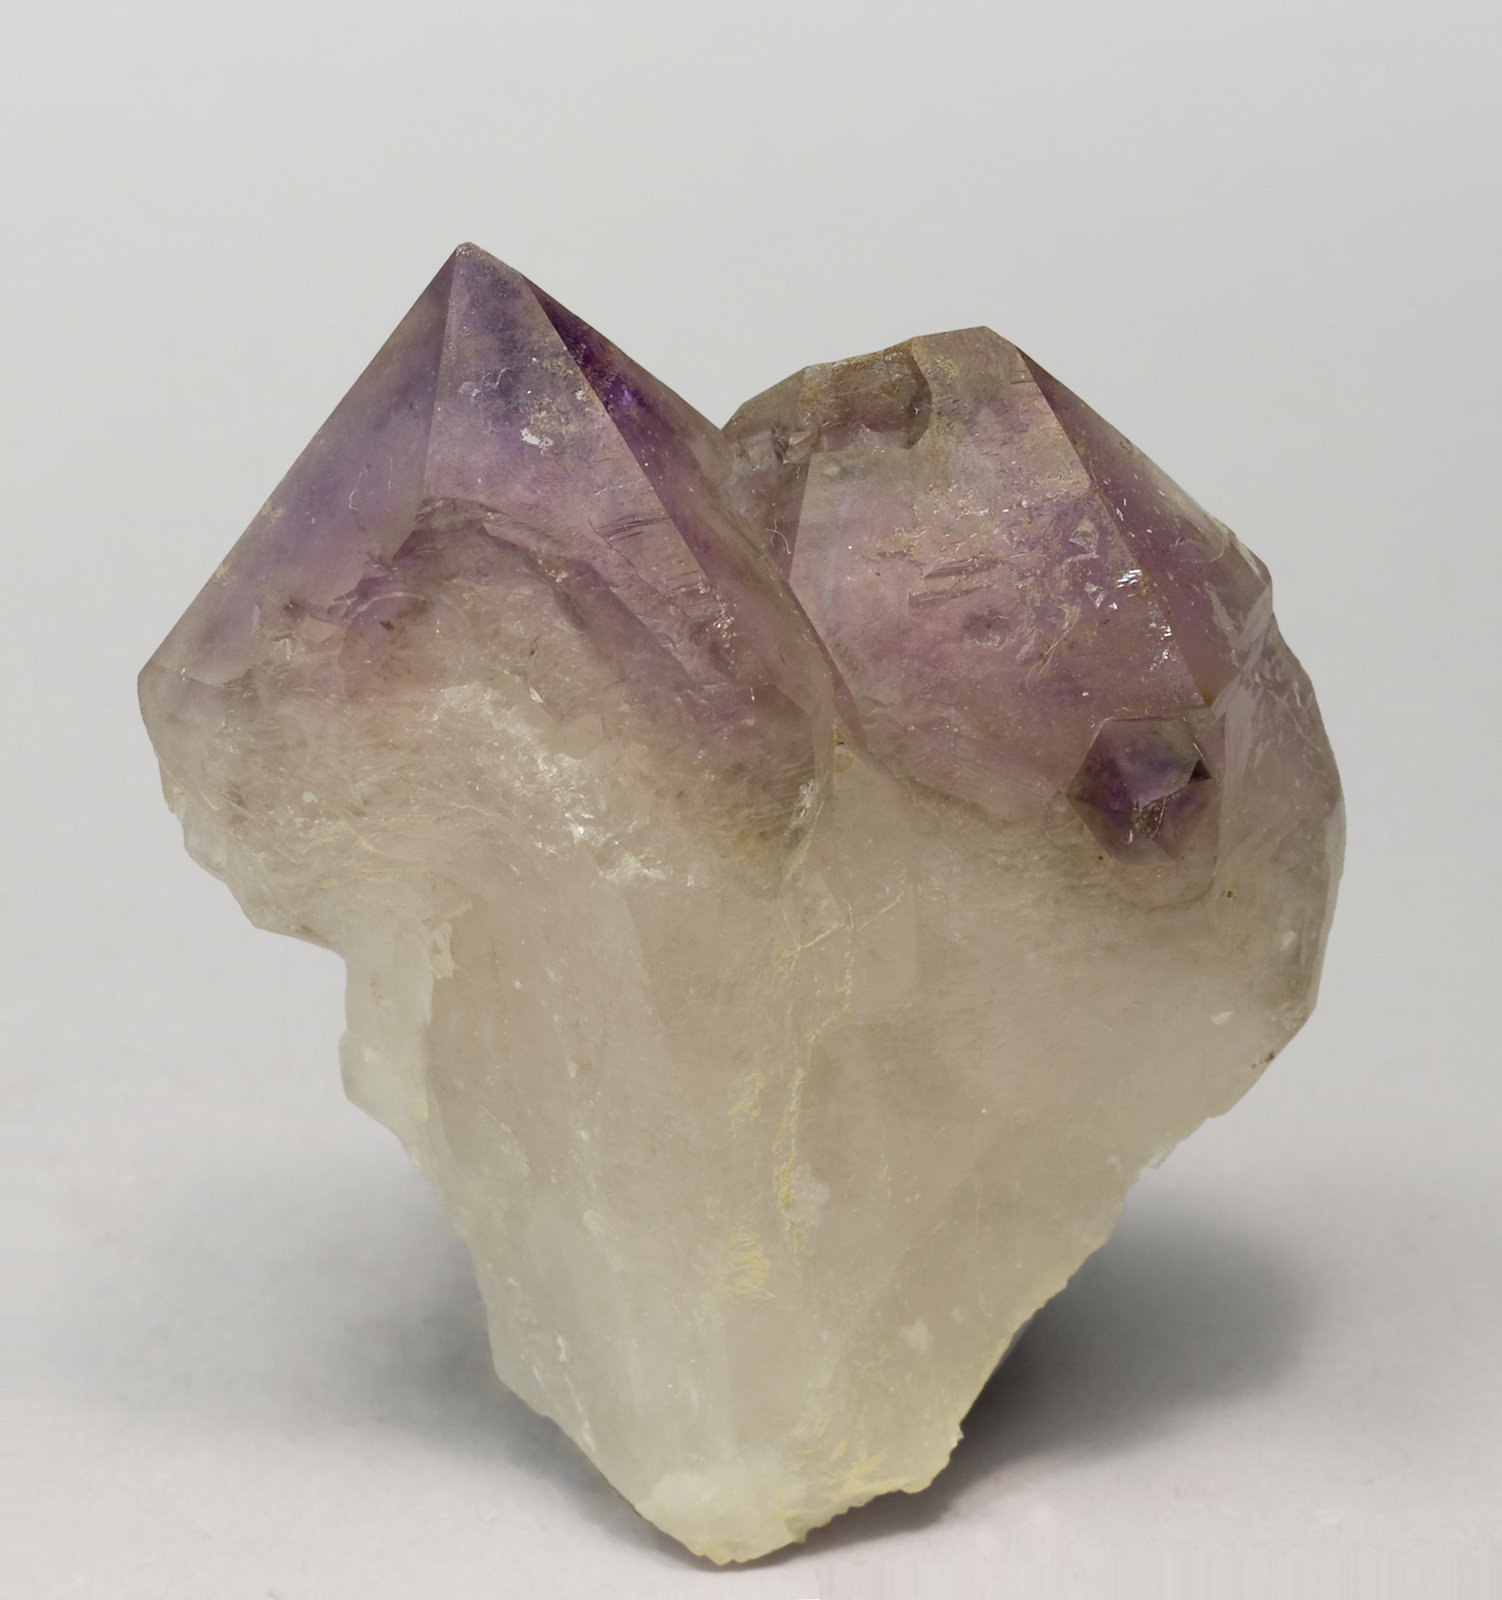 specimens/s_imagesS6/Quartz-NG12S6.jpg